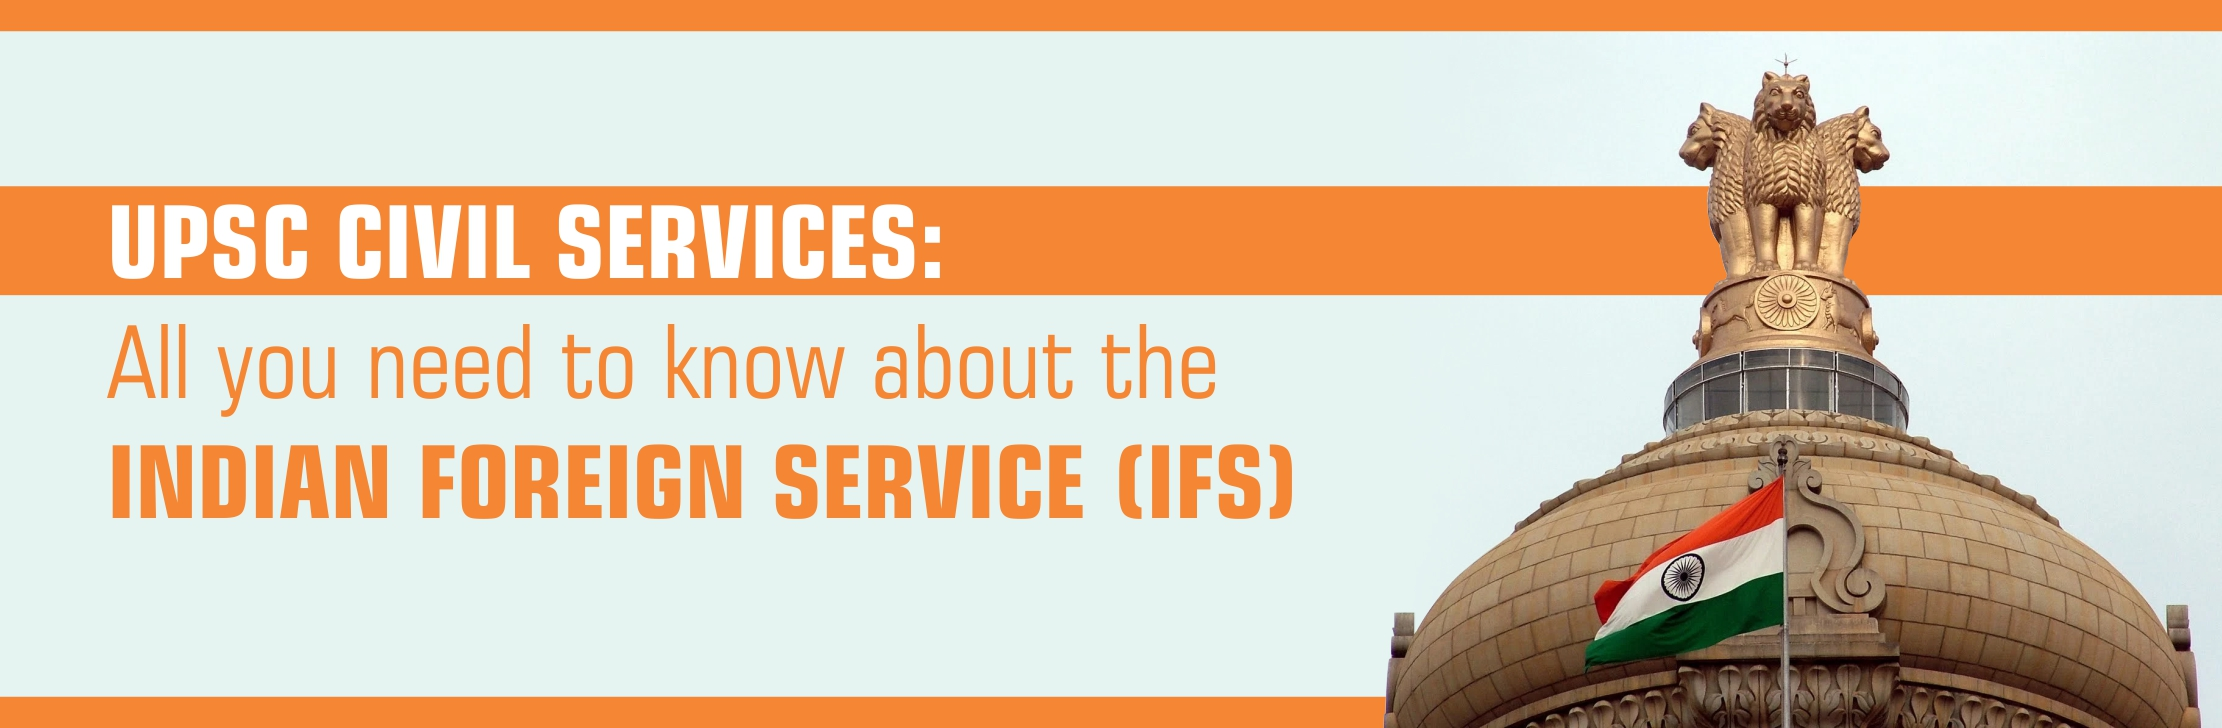 UPSC Civil Services-All you need to know about the Indian Foreign Service (IFS)